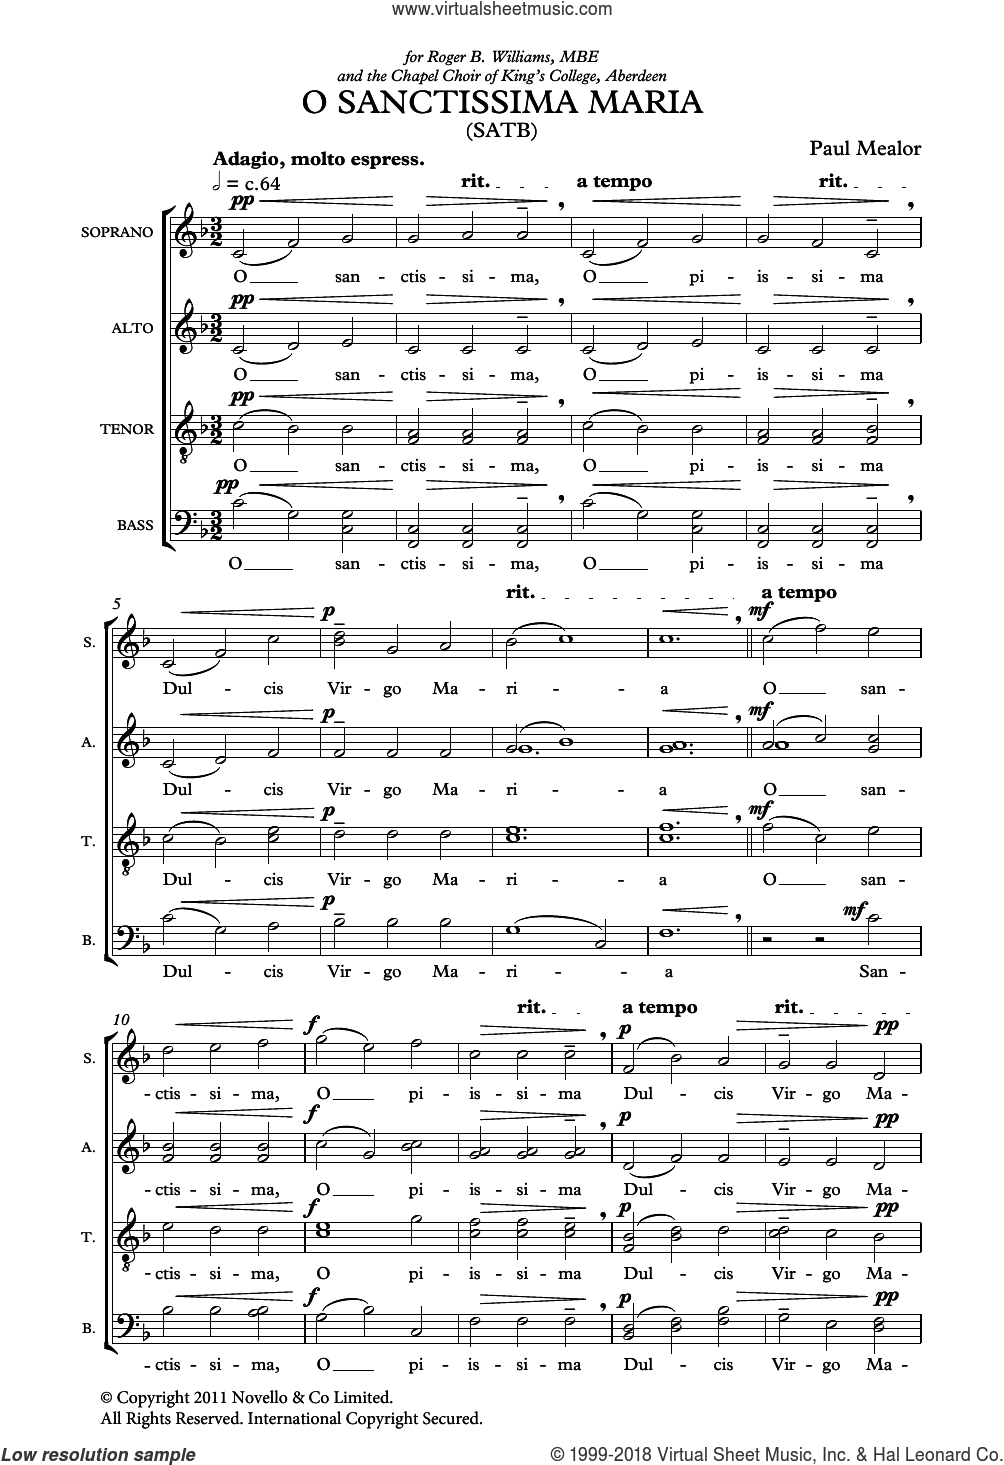 O Sanctissima Maria sheet music for choir by Liturgical Text and Paul Mealor. Score Image Preview.